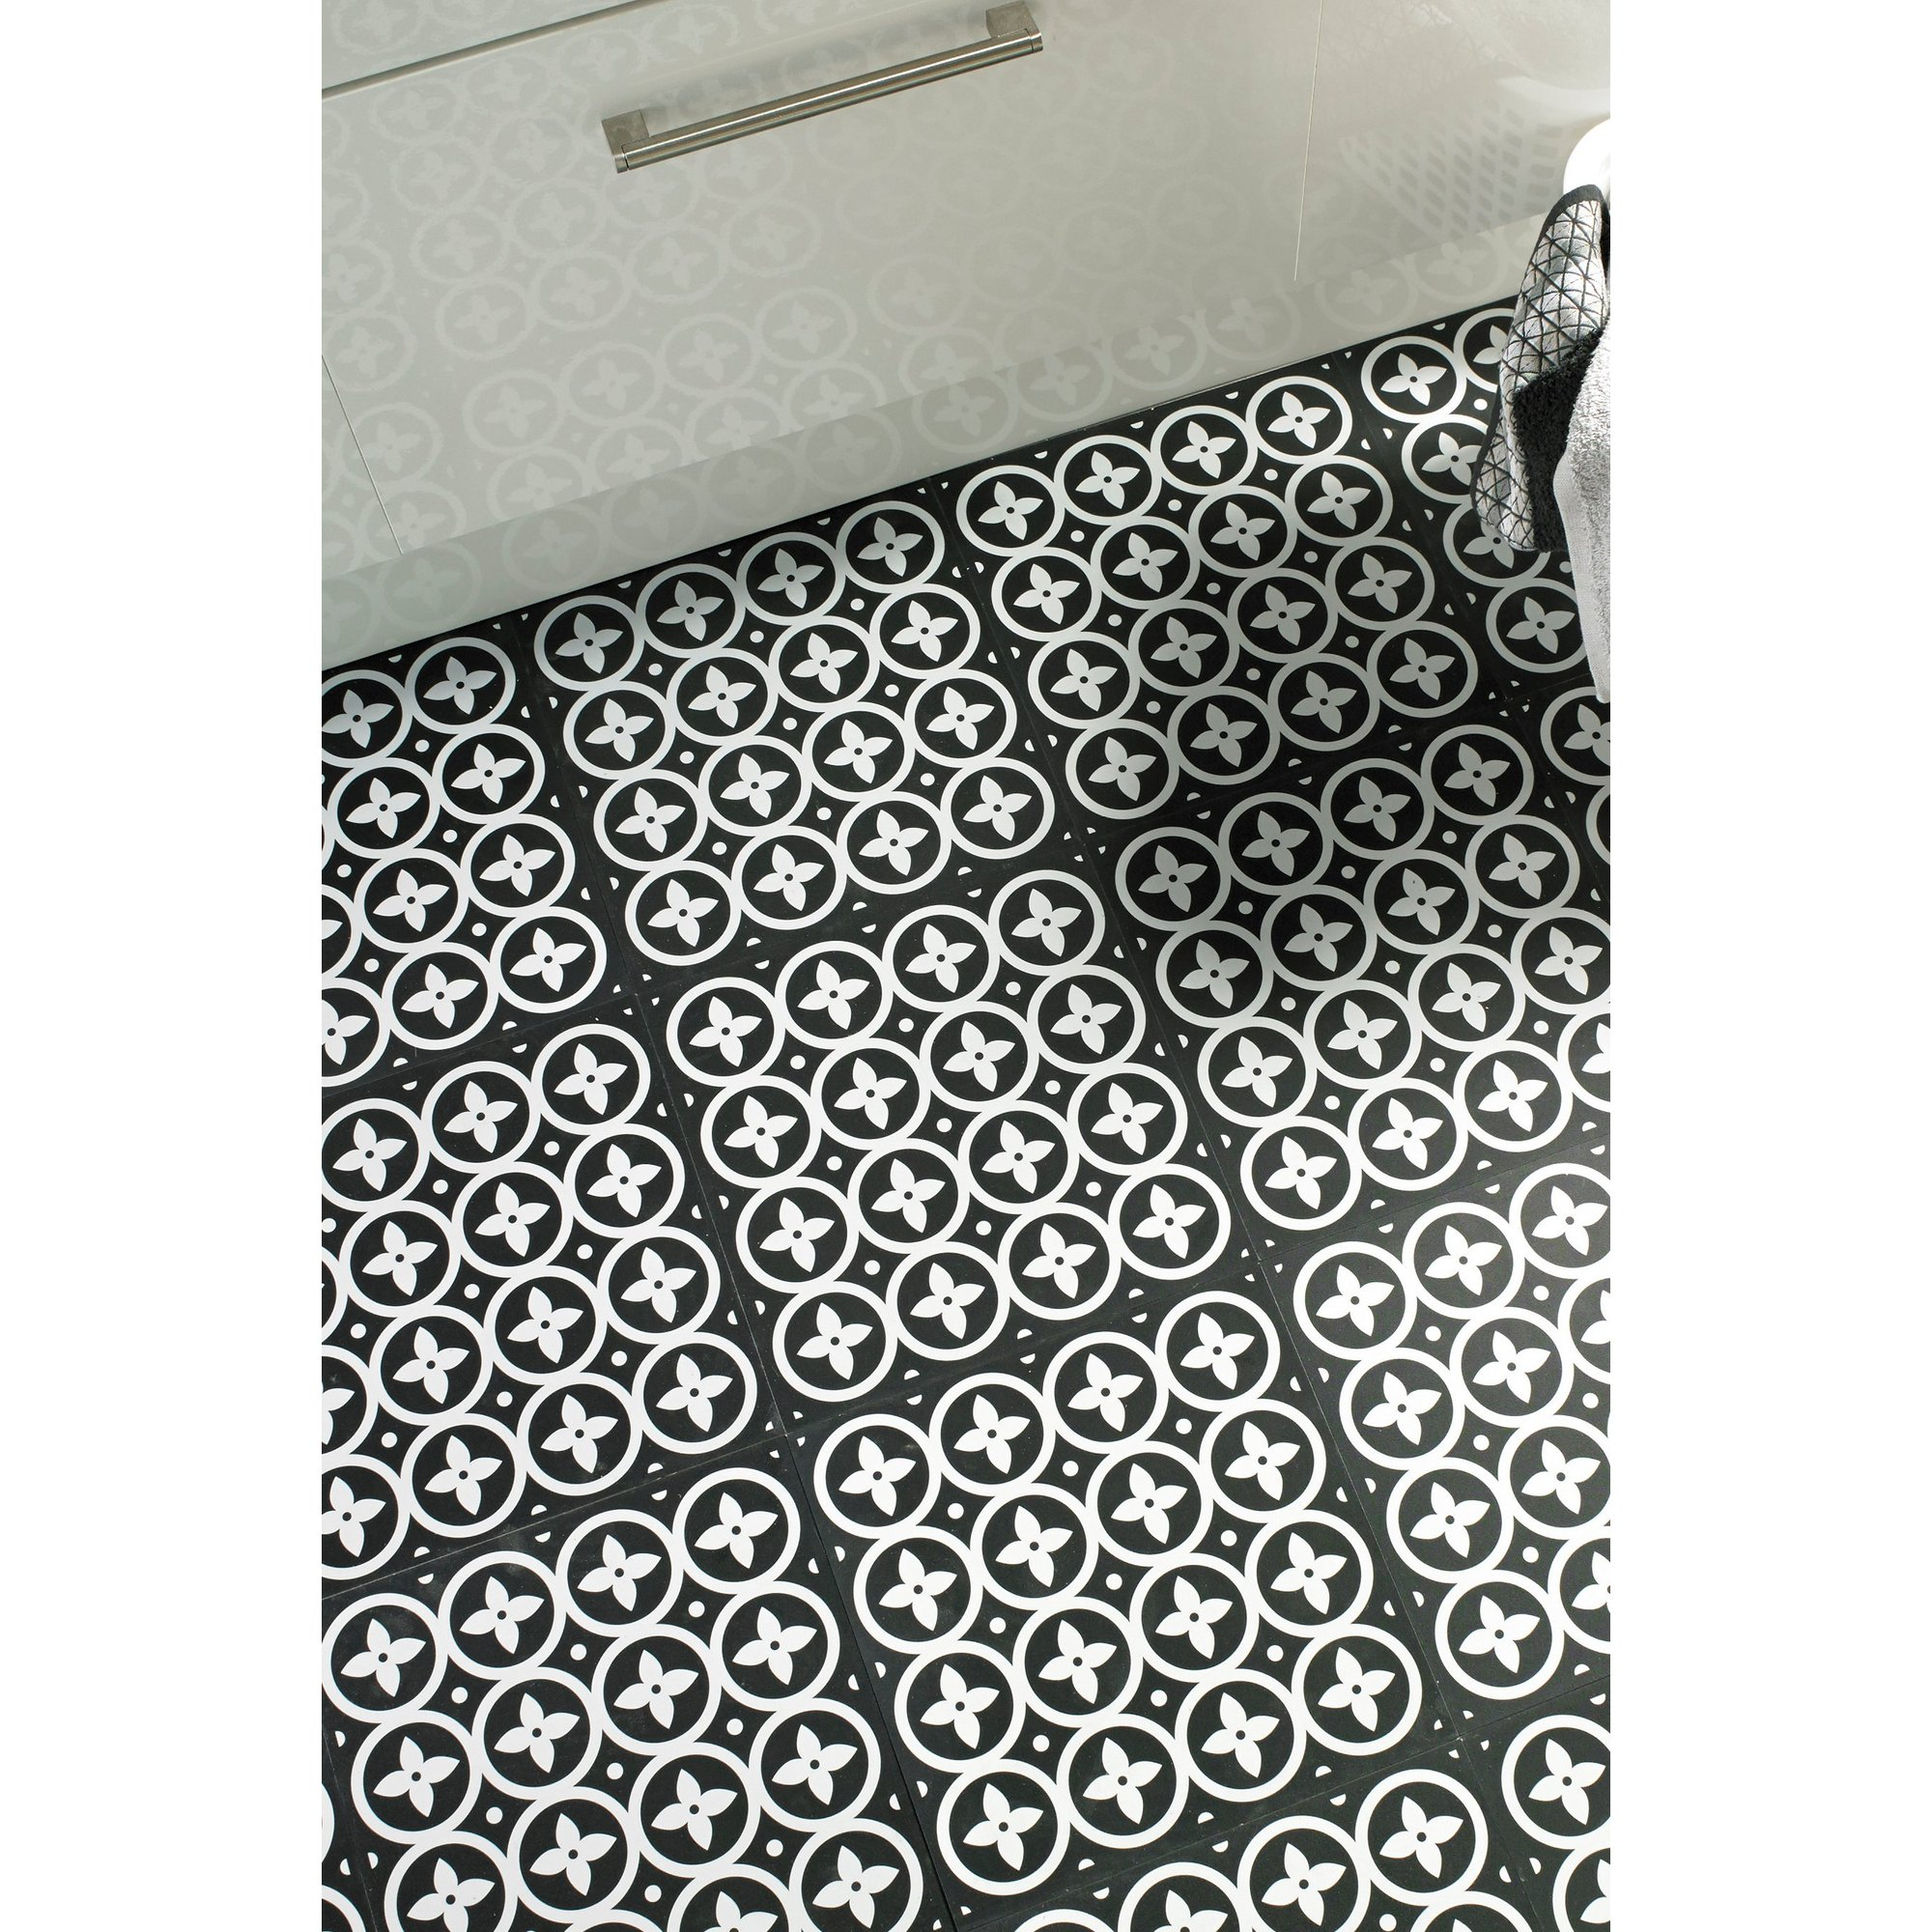 Image of Pack of 11 Floor Tiles